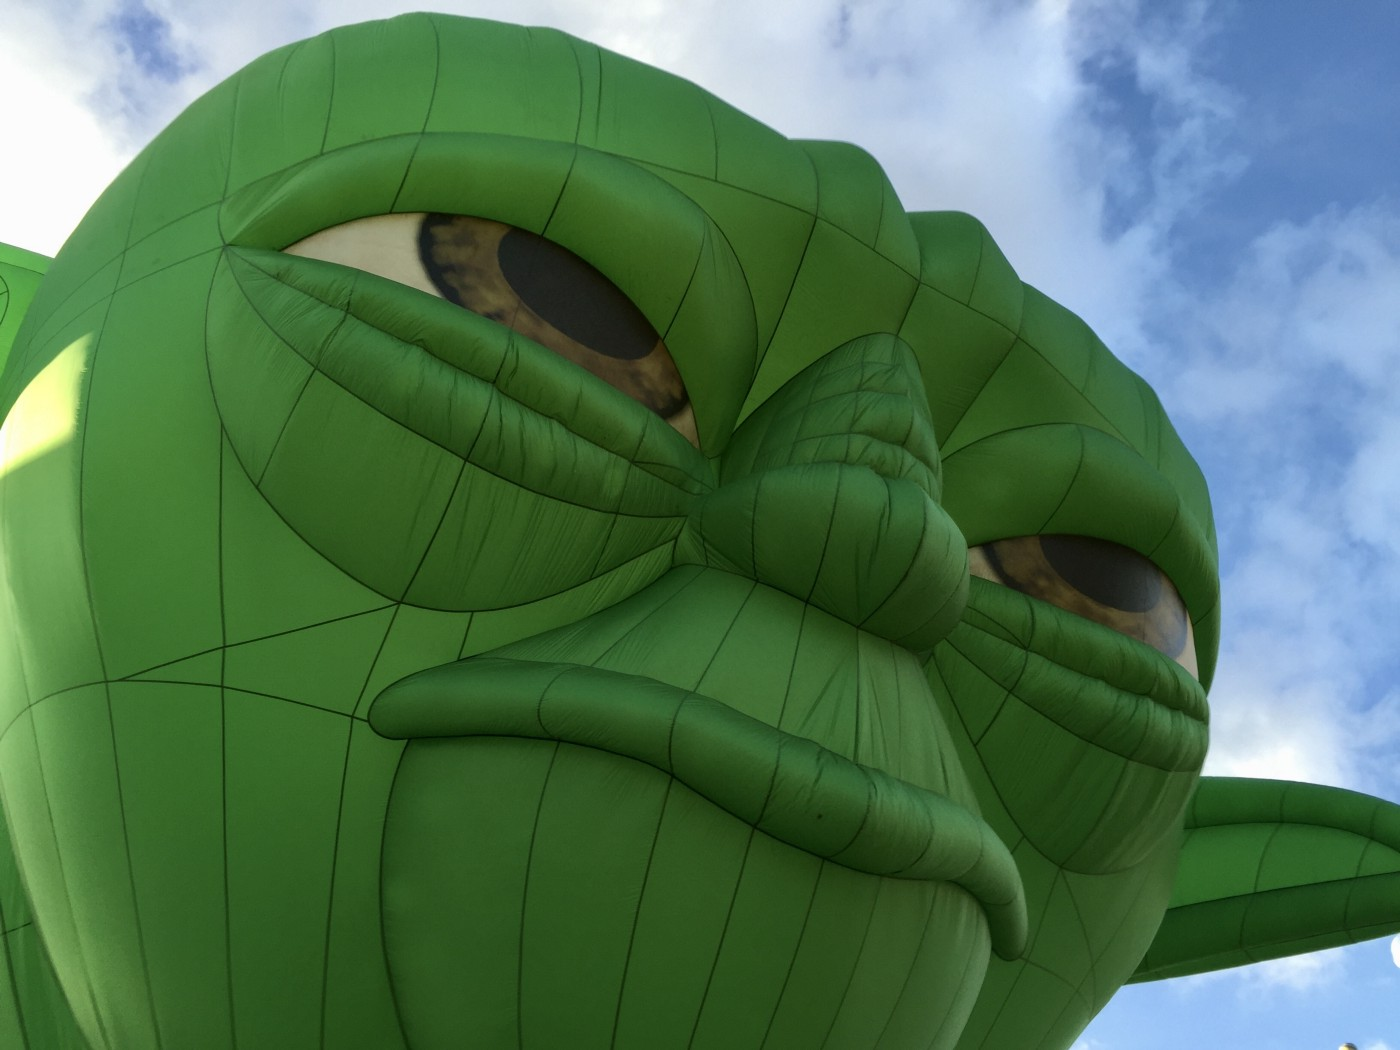 Giant green inflatable Yoda balloon peers out at the world before him.